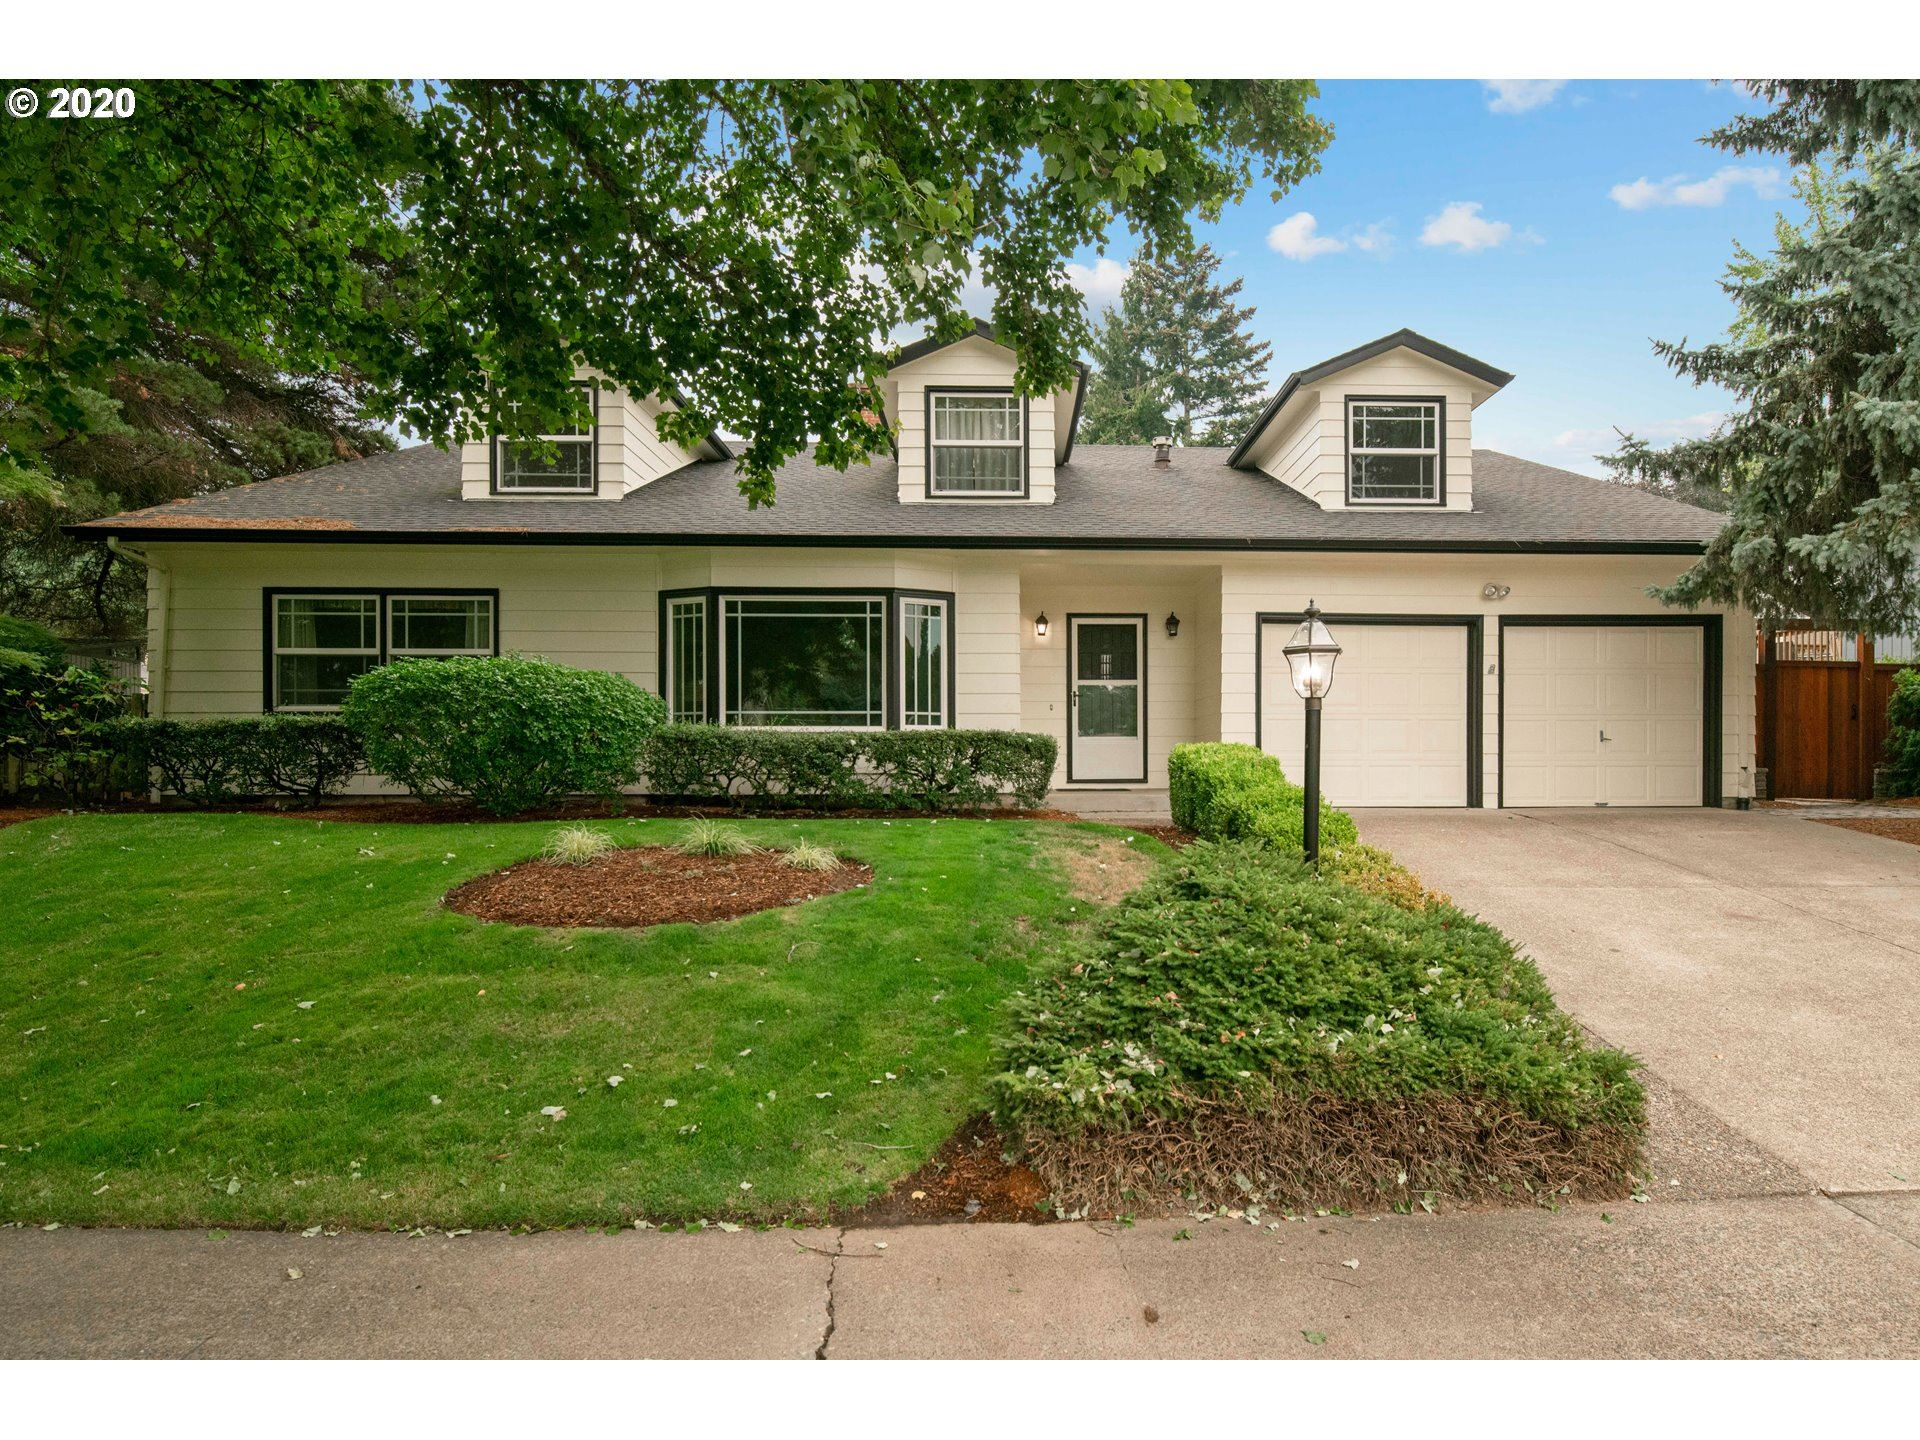 3940 NW COLUMBIA AVE, Portland, OR 97229 - MLS#: 20237834